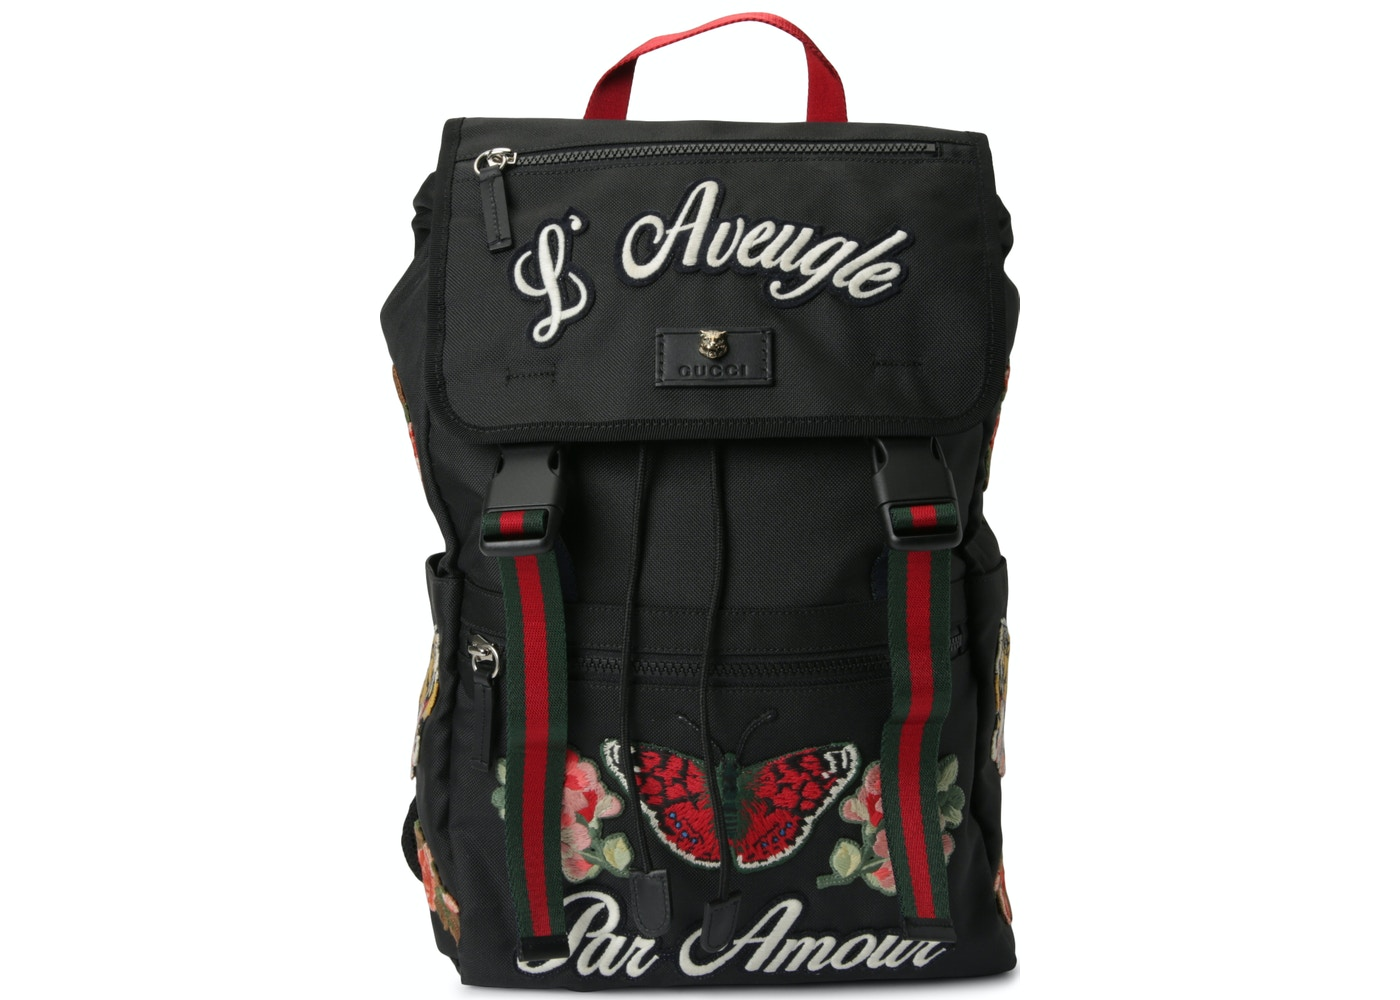 3099f1da1604b1 Gucci Backpack L Aveugle Par Amour Embroidered Web Strap Black